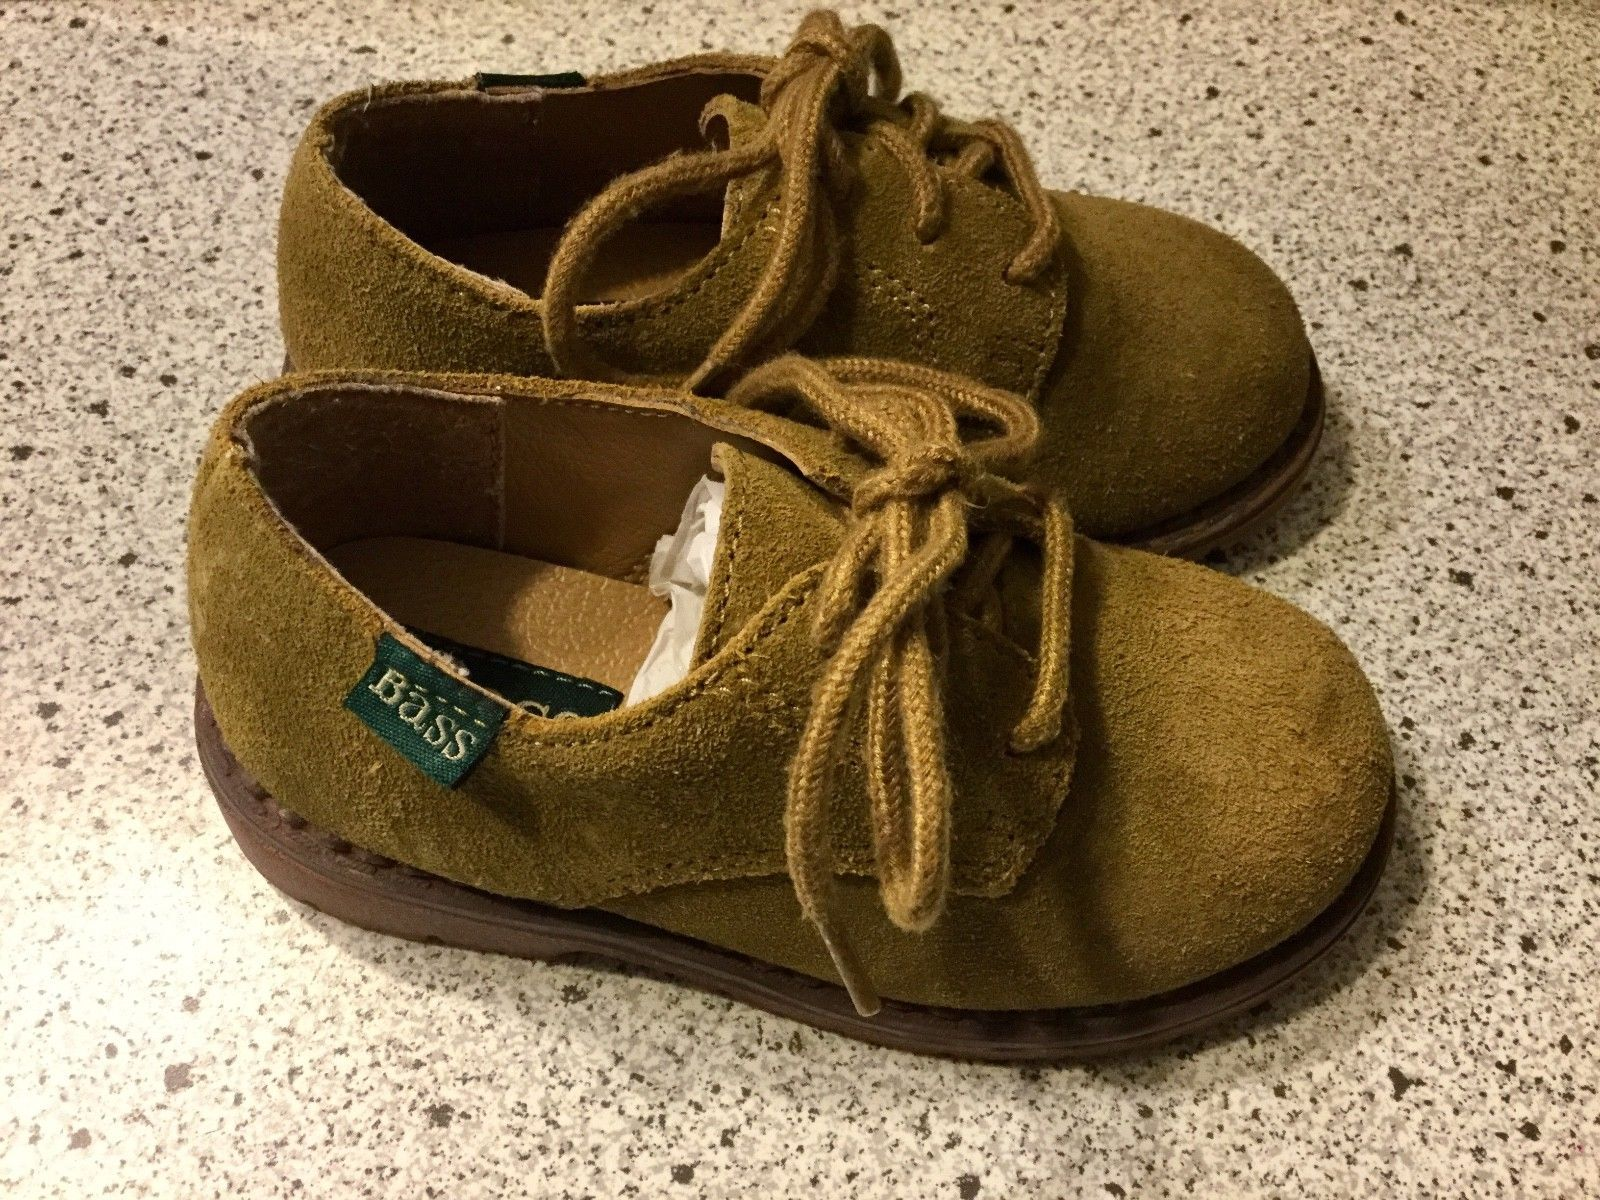 Baby Bass Tan Bucky II 2 Boys Shoes Size 8 M Leather 6547-261 With Box image 3